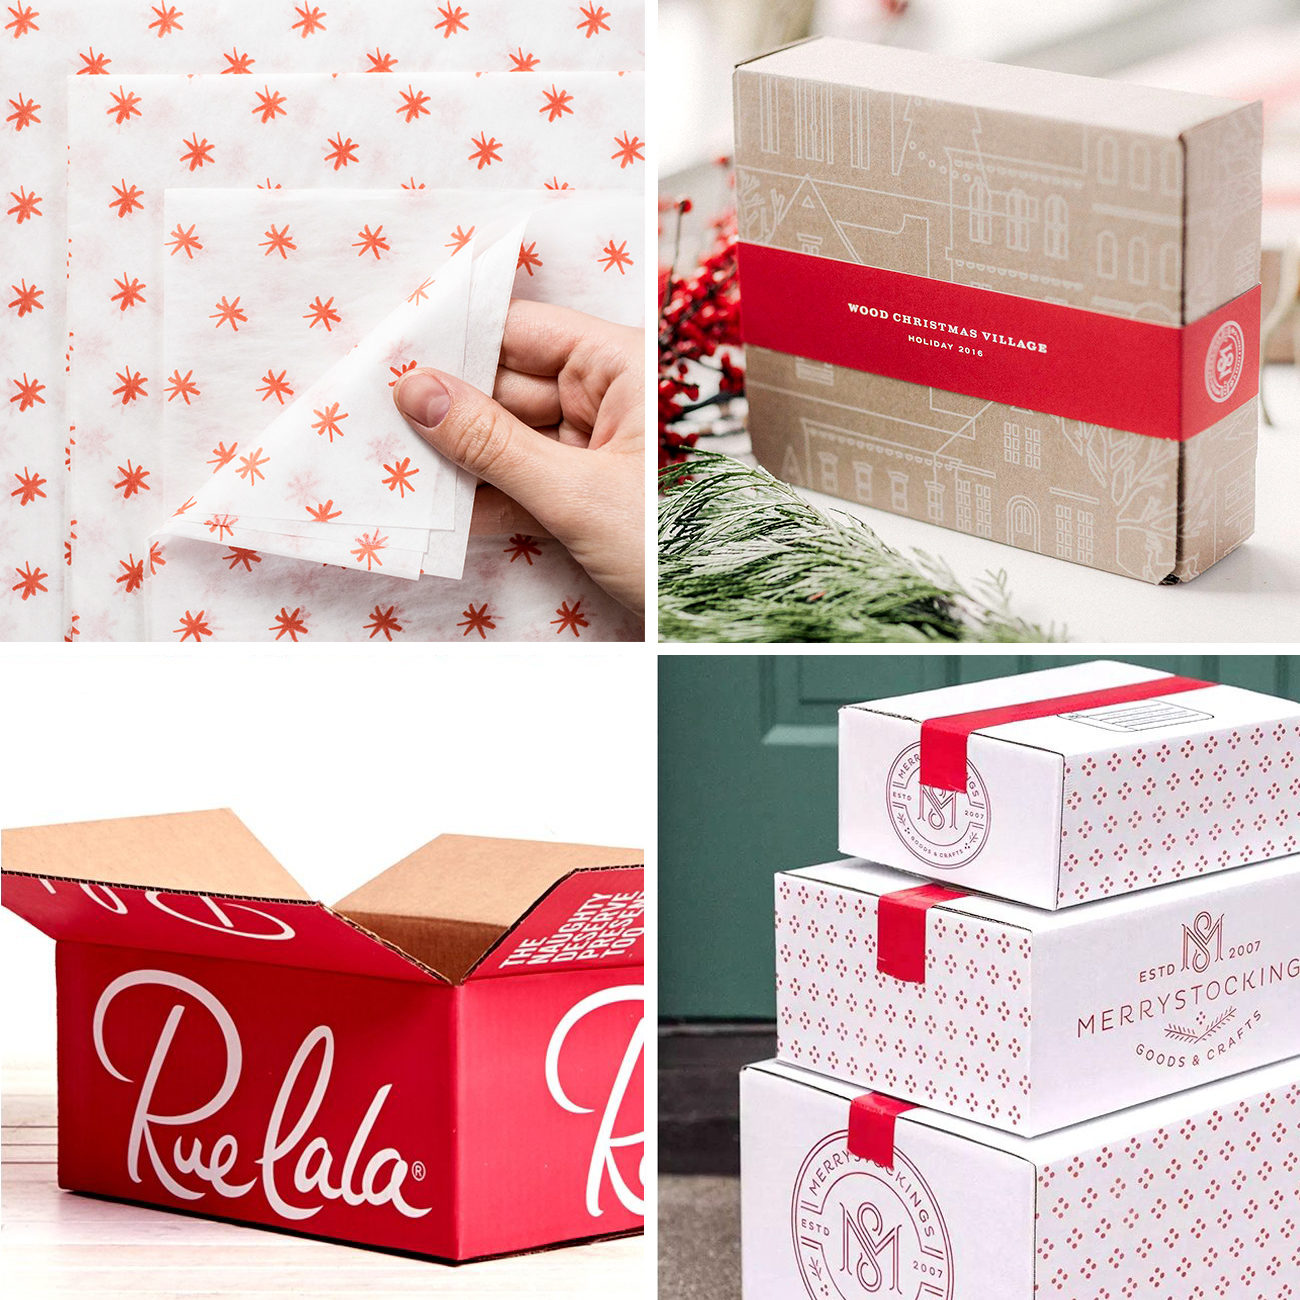 Photos via: Page Three Hundred, Lumi, Studio MLPS, Cassouki 90 Ideas to Spruce Up Your Holiday Packaging Design